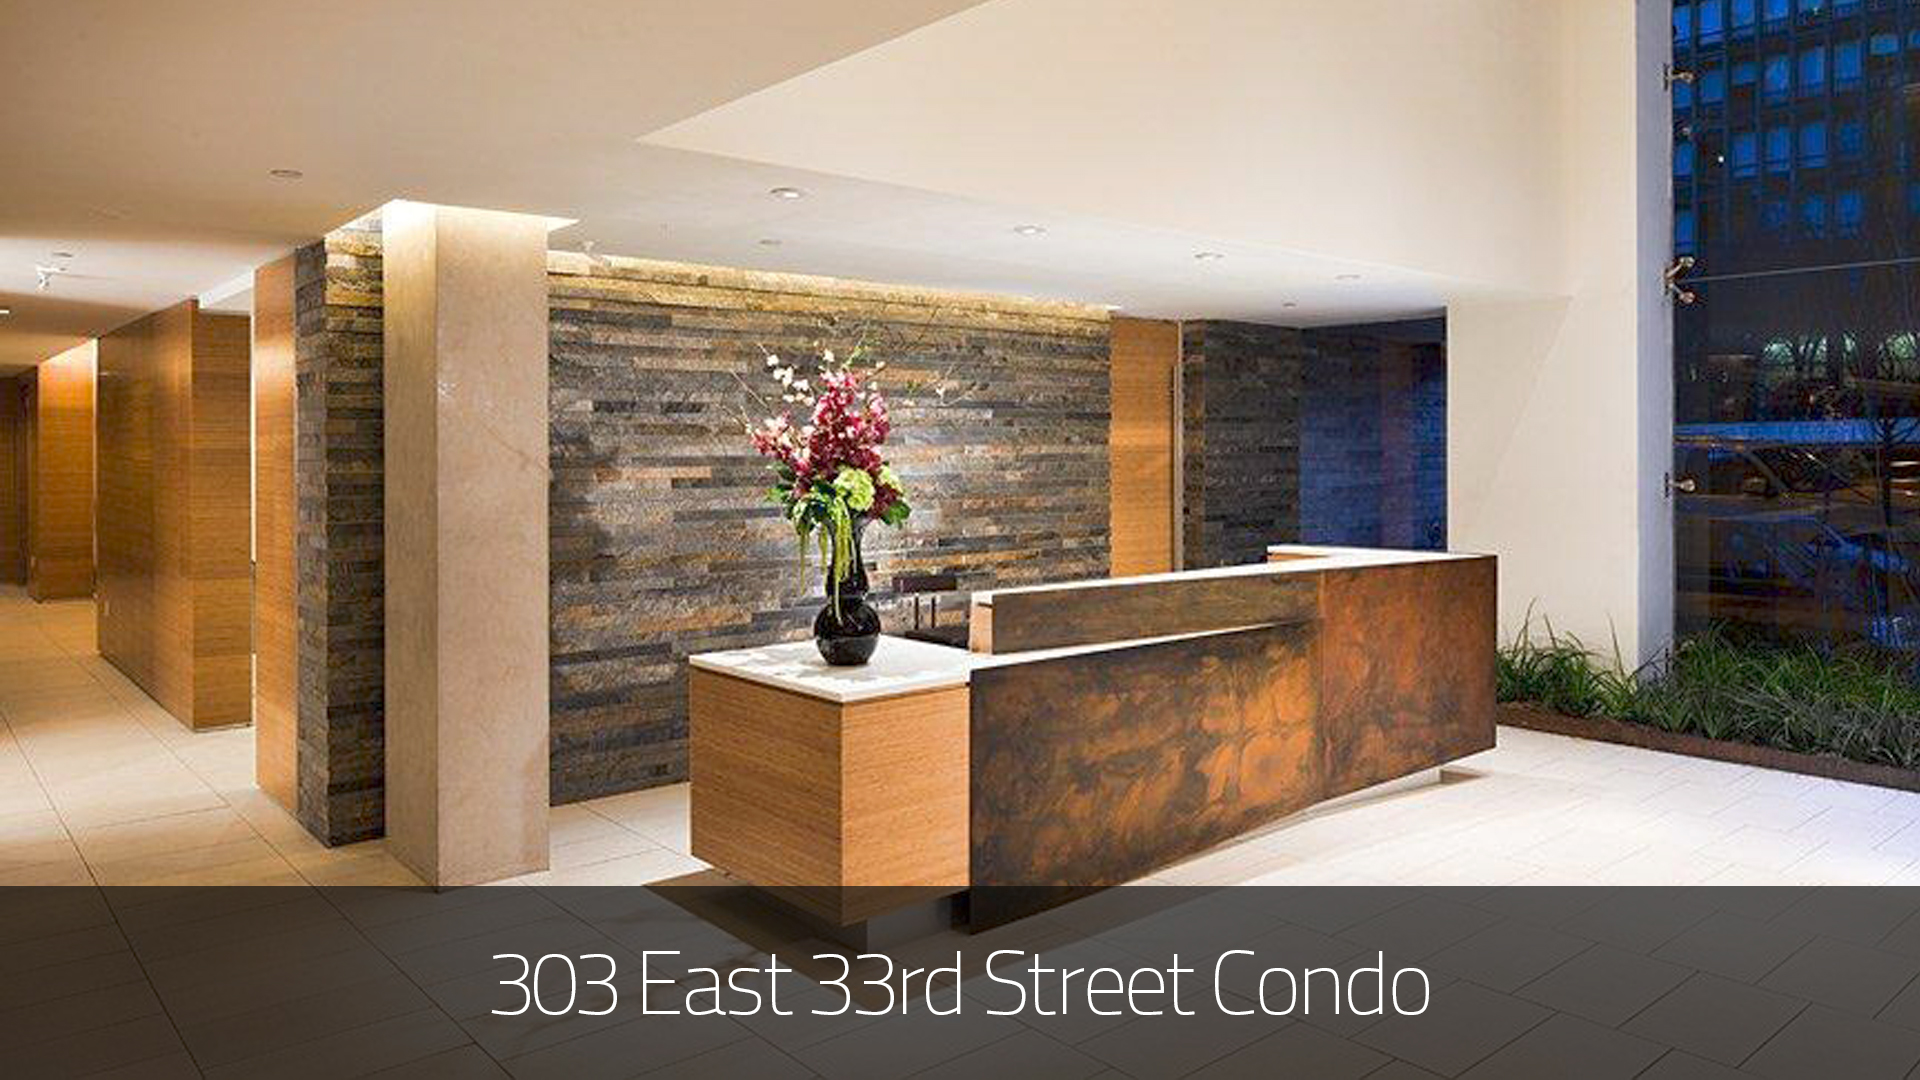 303 east 33rd street condo